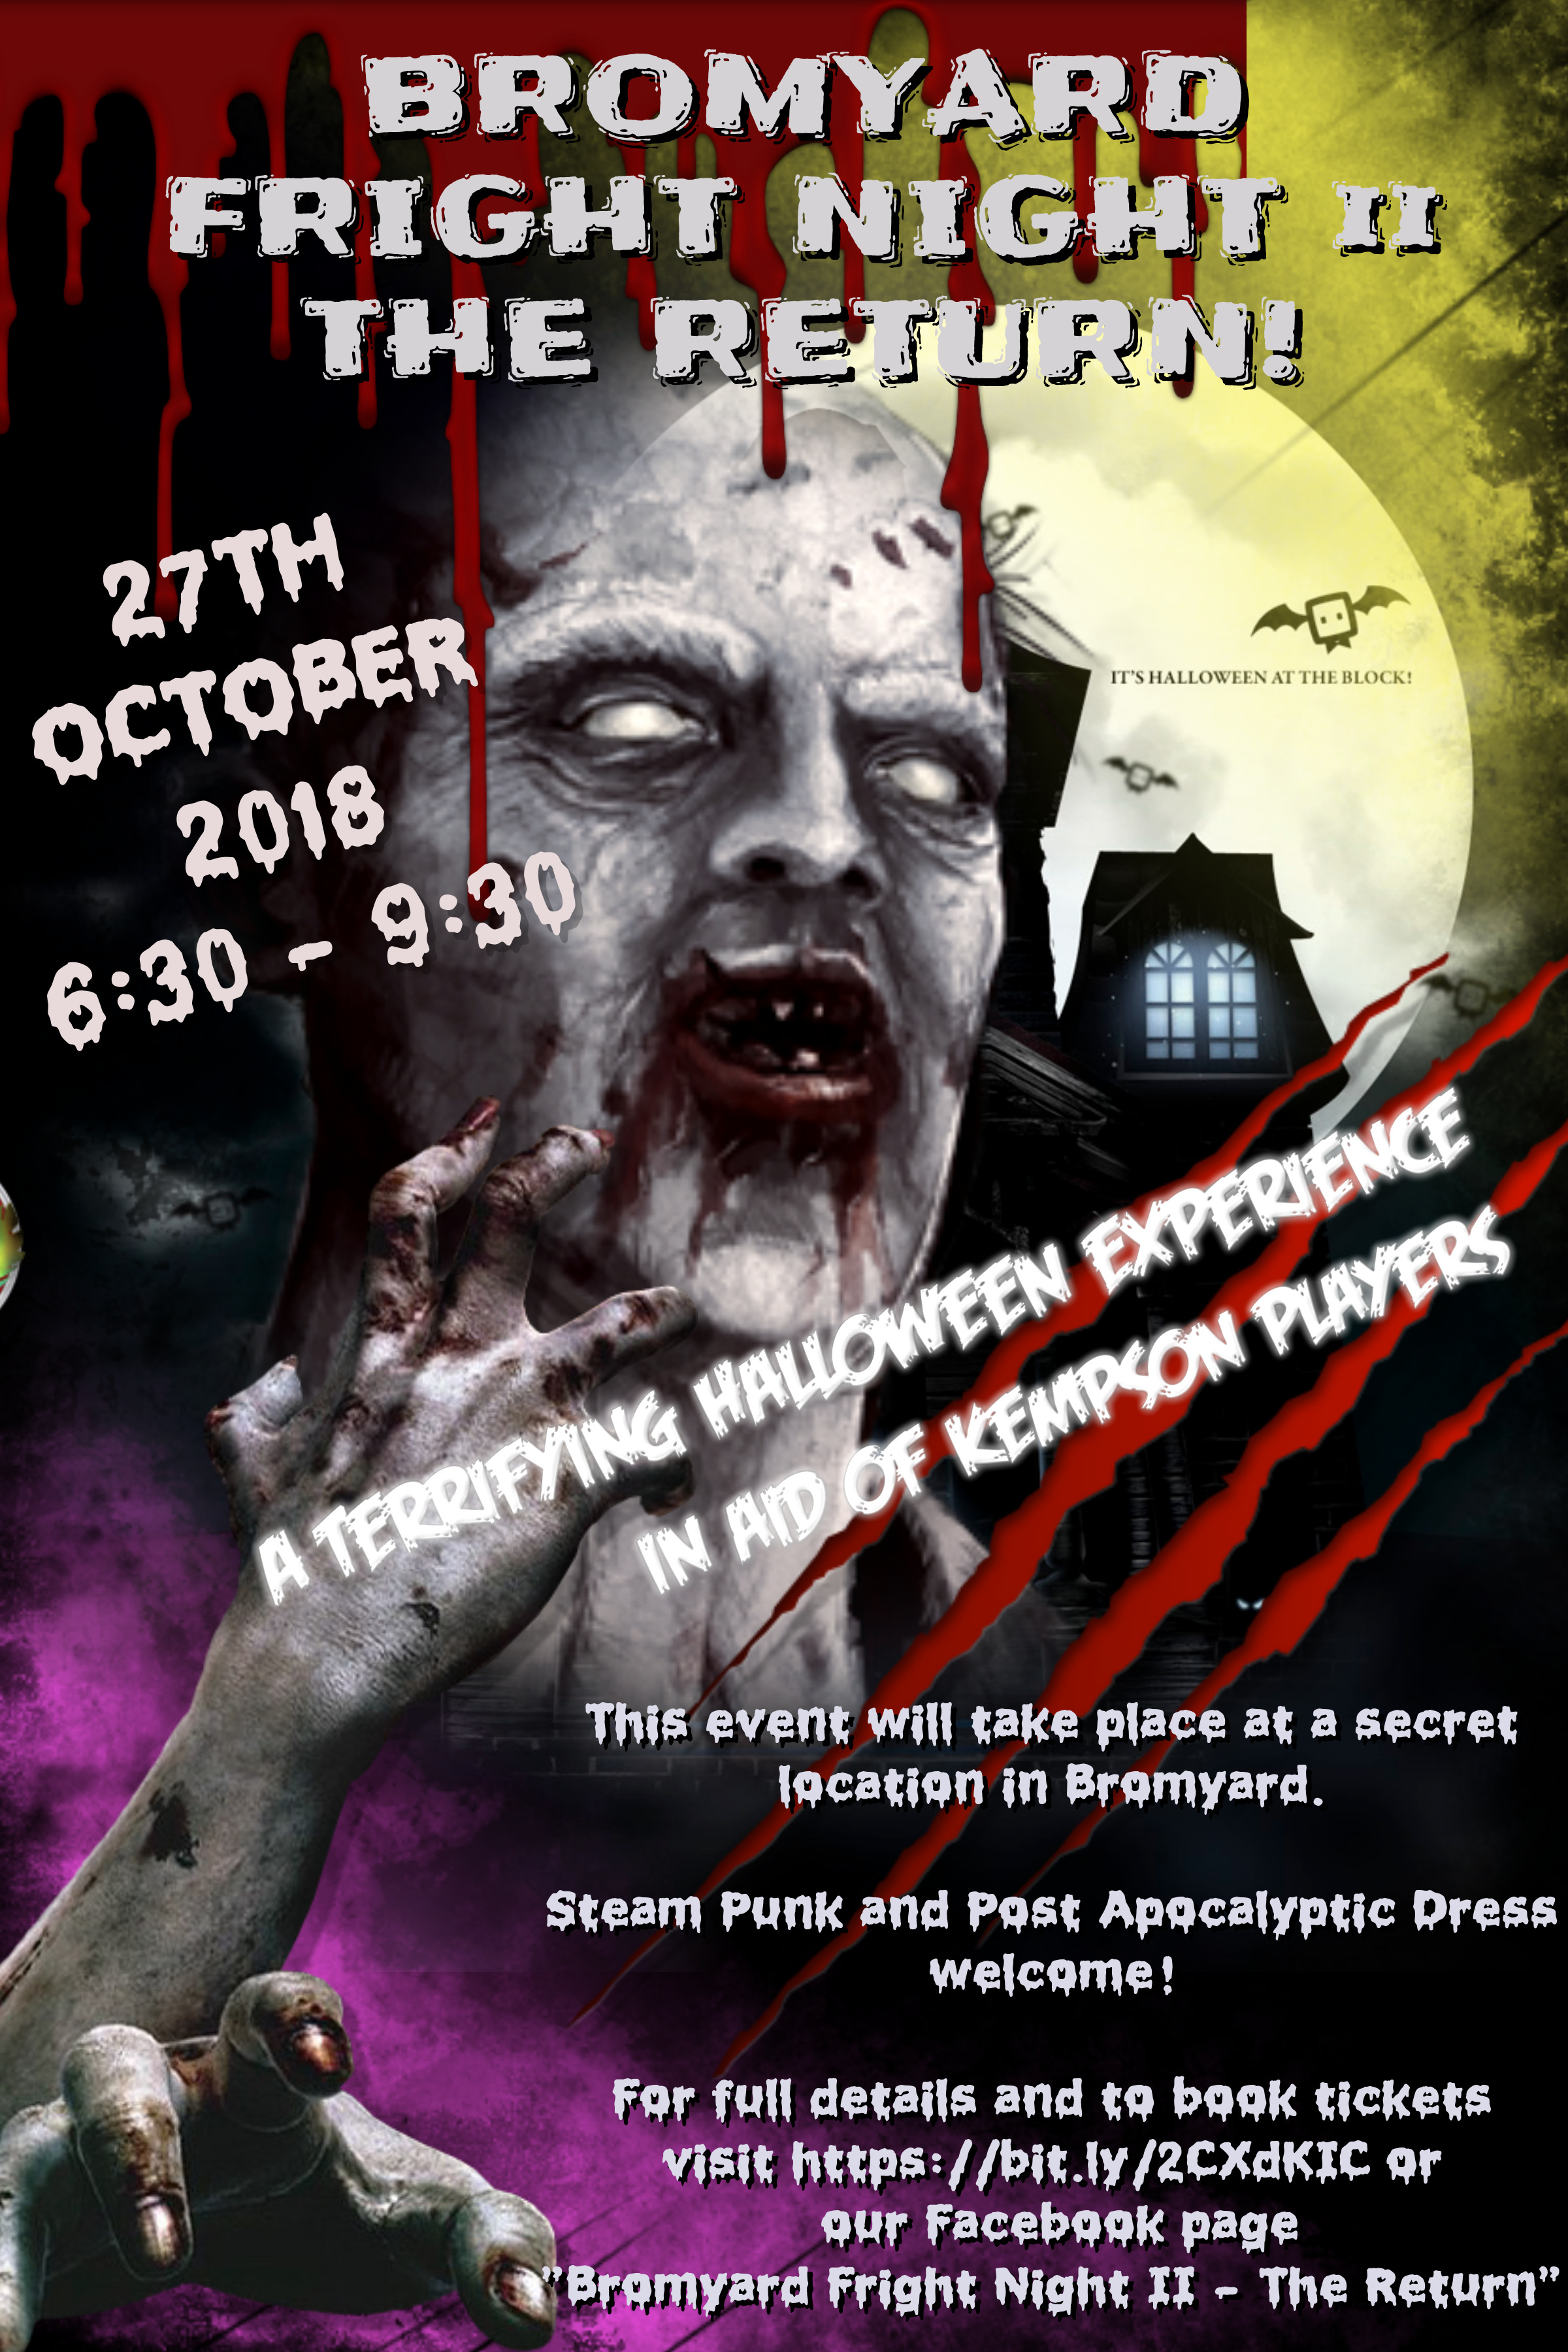 Bromyard Fright Night II - the Return